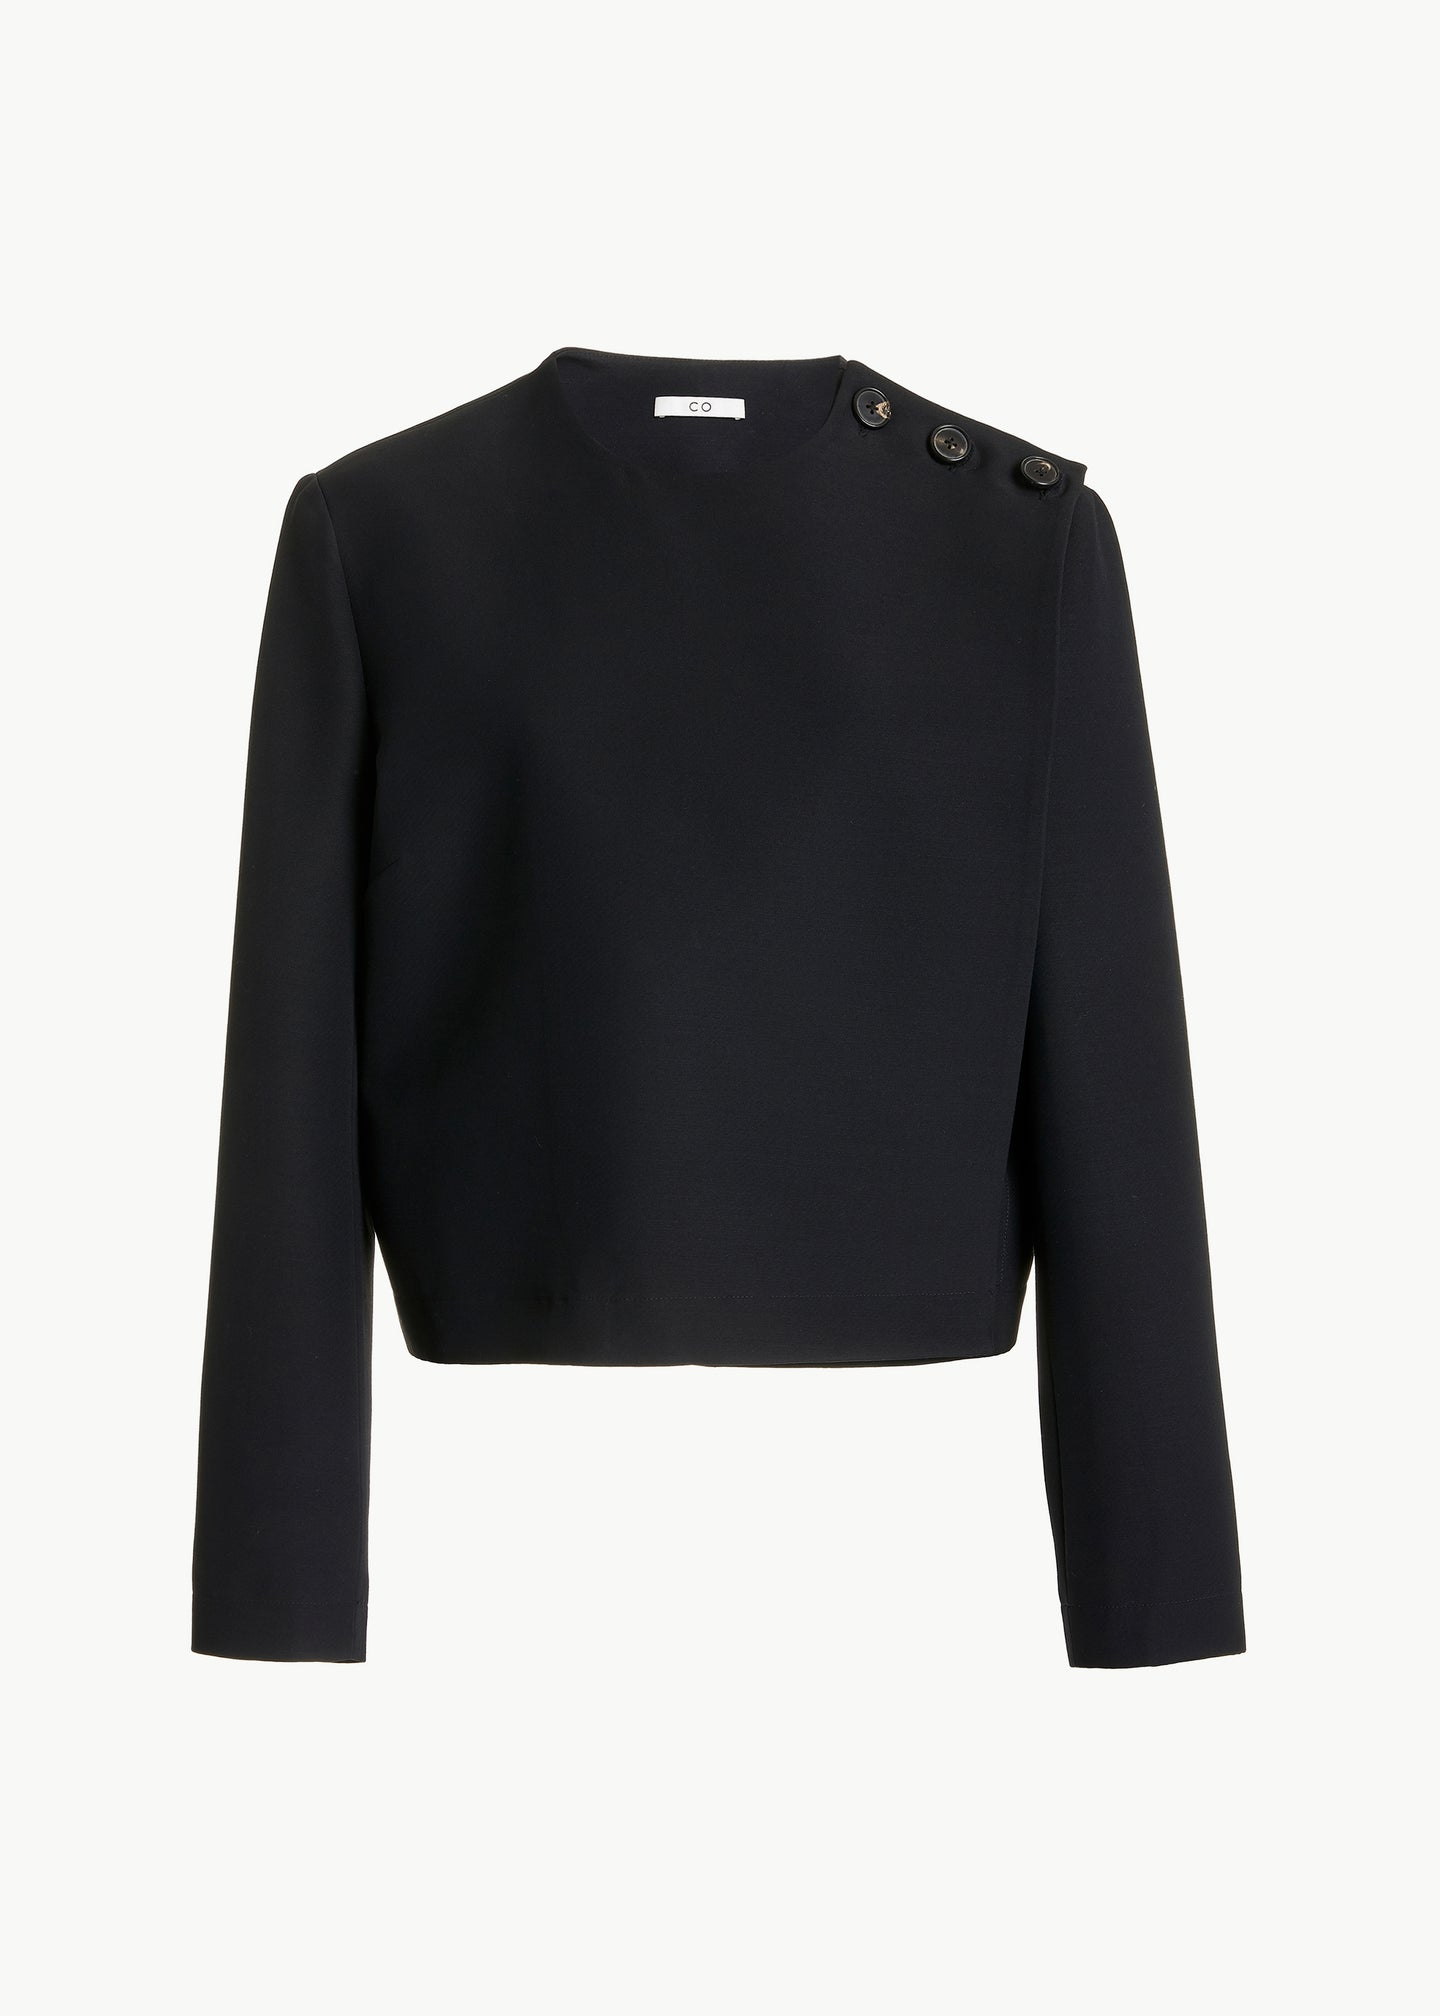 Cropped Jacket in Viscose Wool - Black - CO